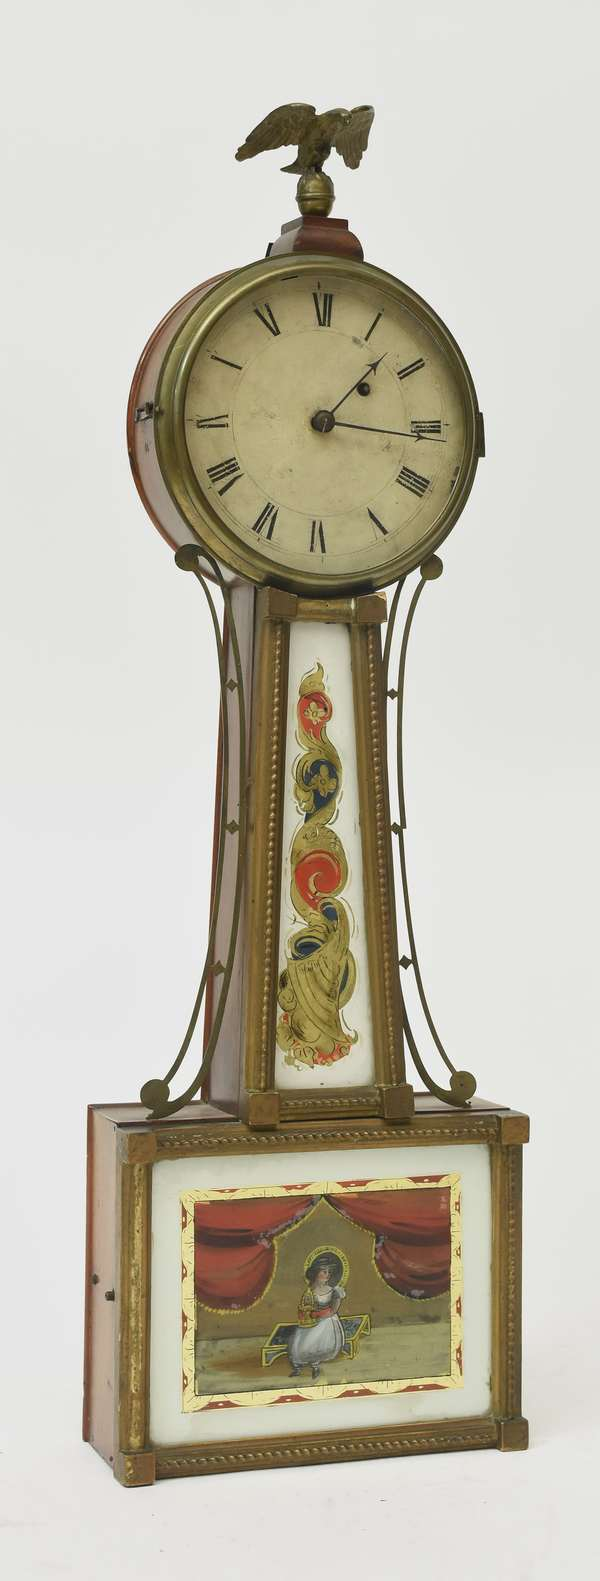 Fine early 19th C. weight driven banjo clock with original tablets, 32